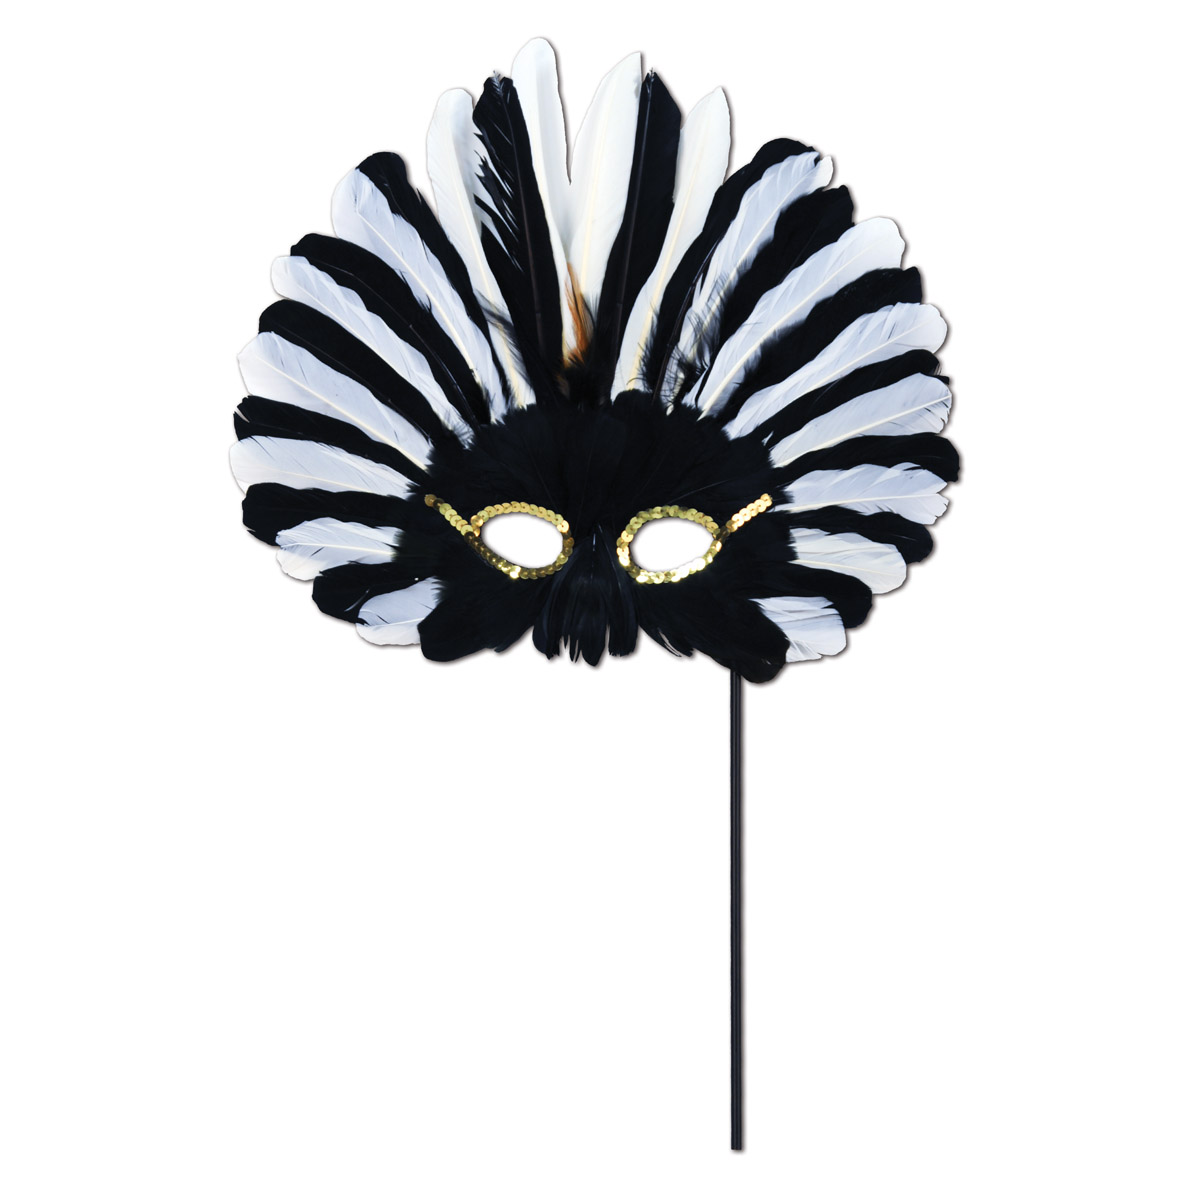 Feathered Mask with Stick (Pack of 12)  black and white, black, white, green, gold, purple, multi-colored, feather, maks, stick, masquerade, mardi gras, party, decoration, party favor, new years eve, inexpensive, wholesale, bulk